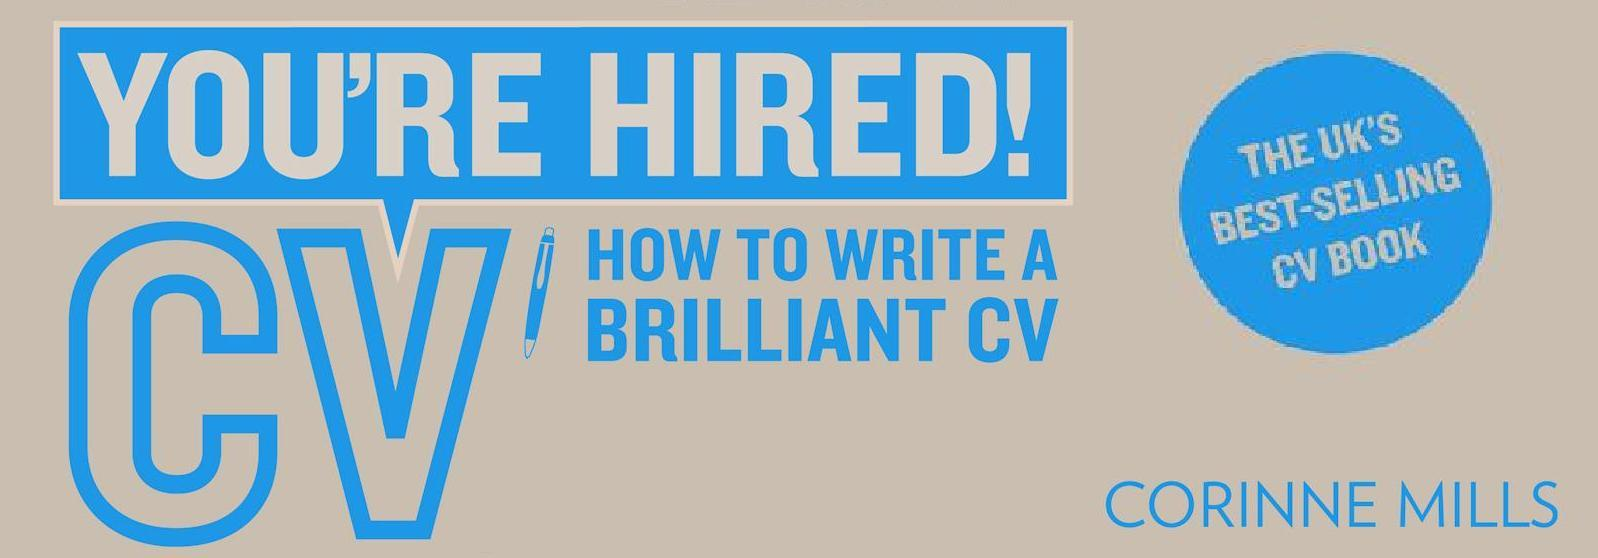 You're Hired - How to Write a Brilliant CV